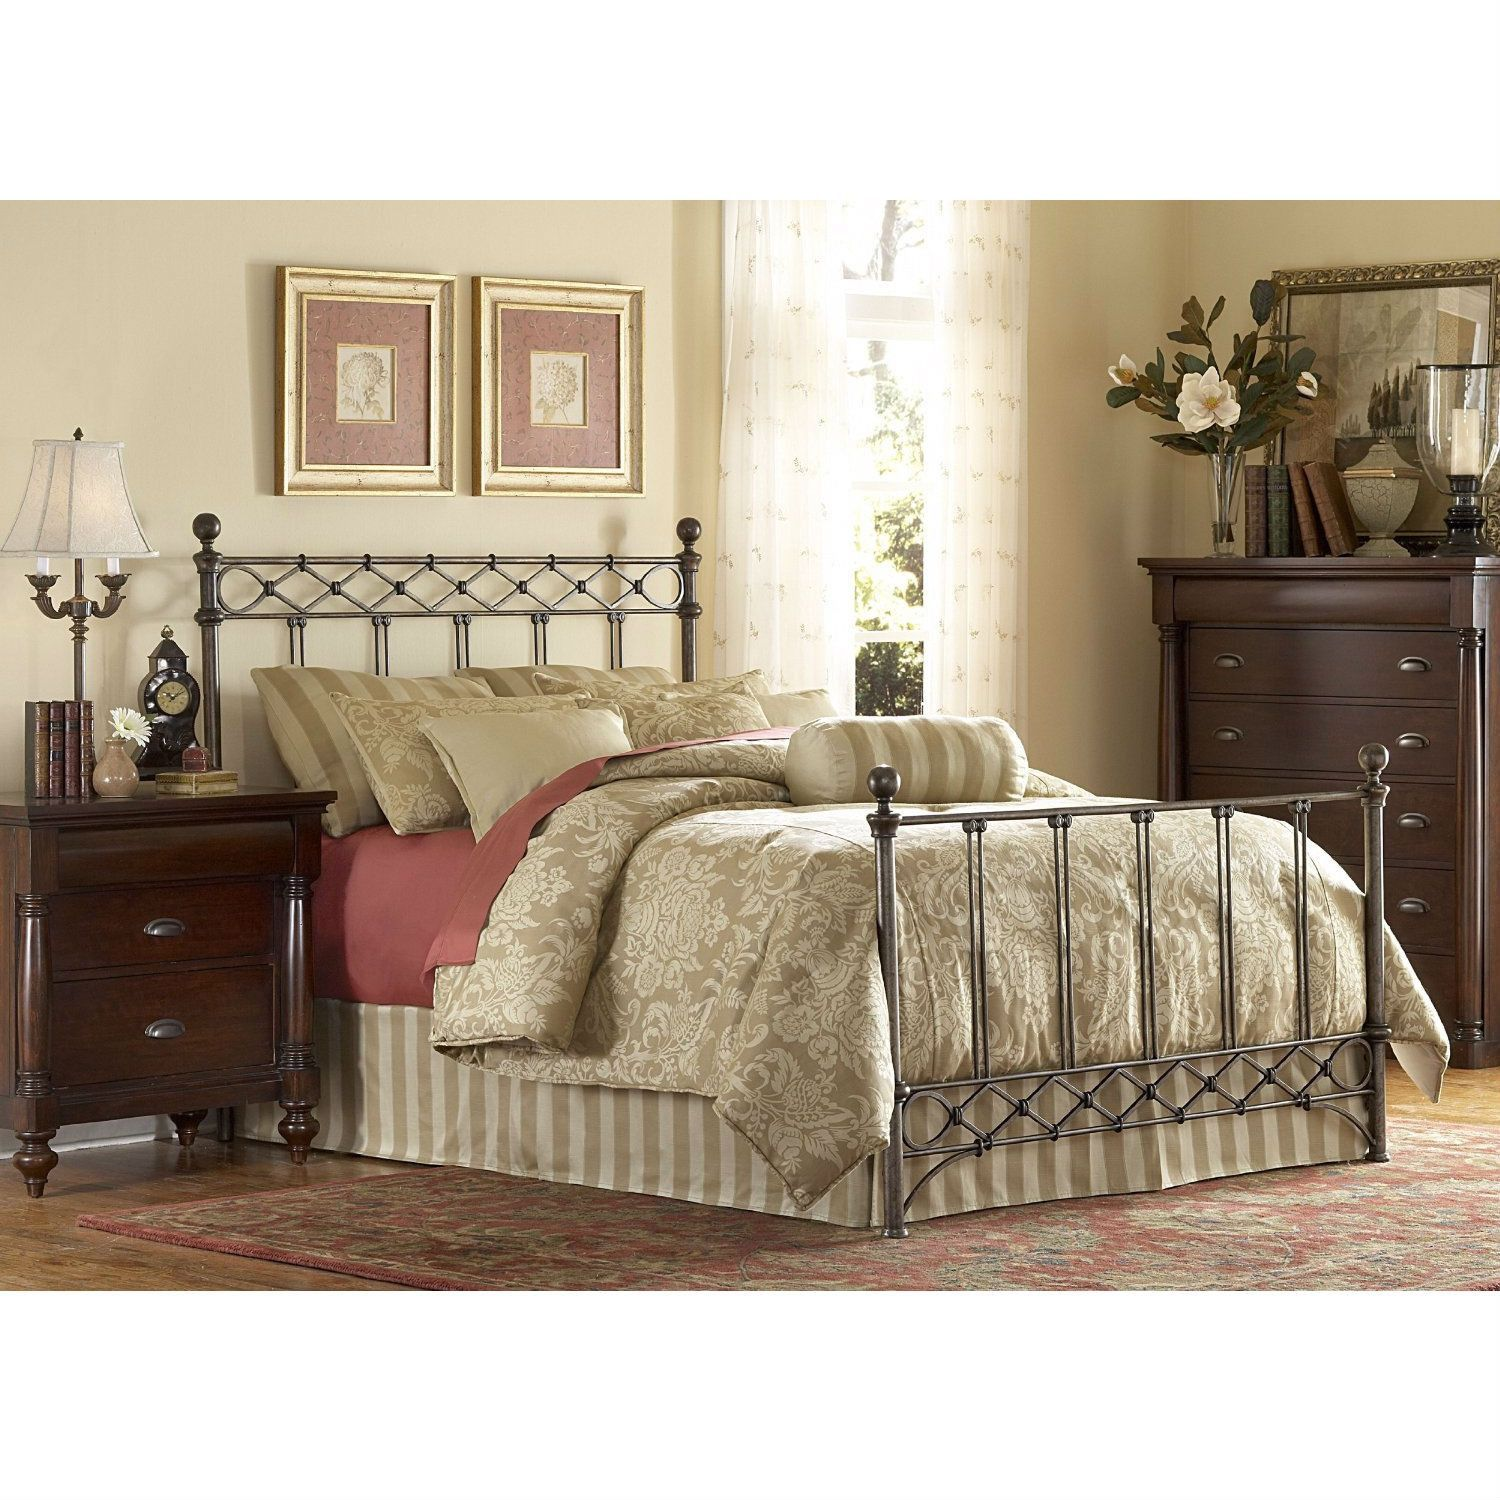 King size Metal Bed with Headboard and Footboard in Copper